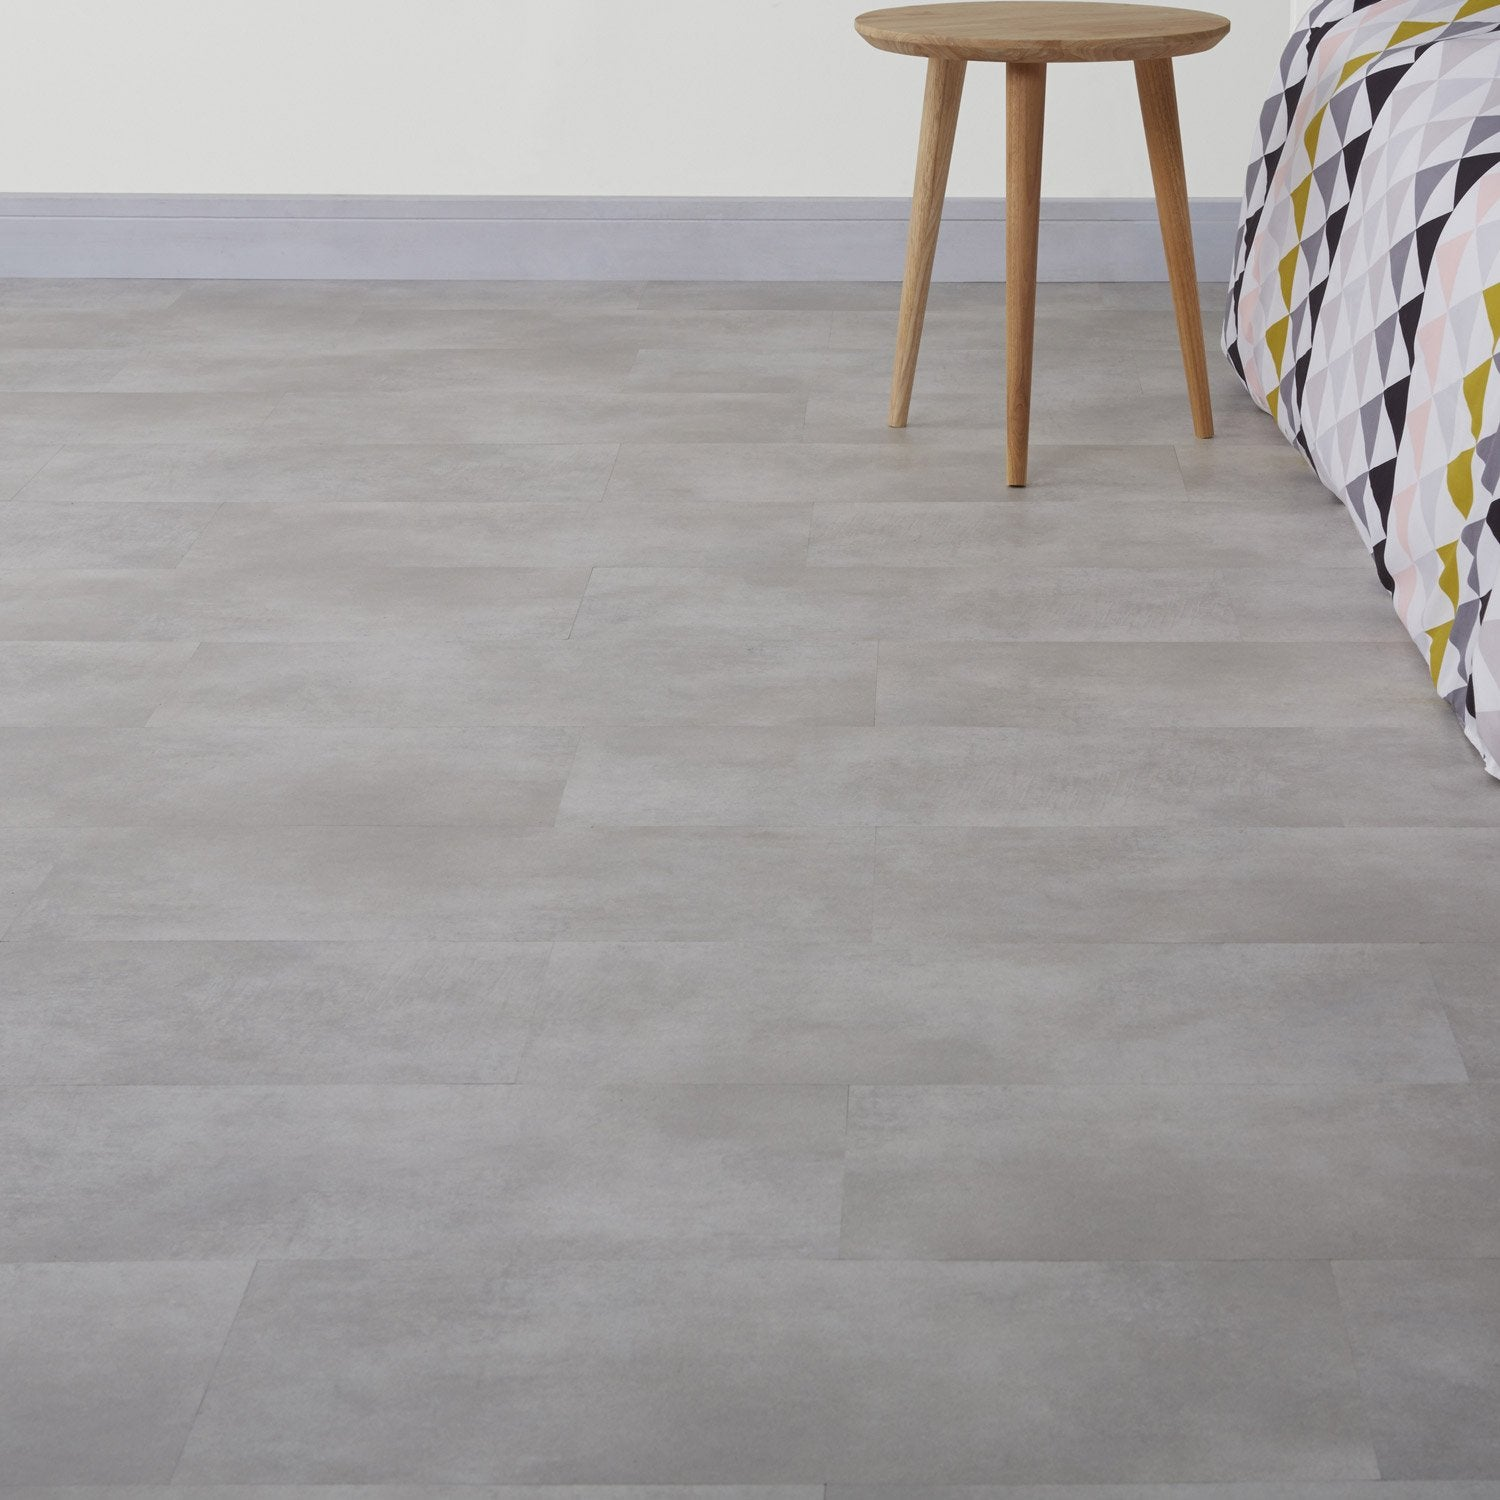 Dalle Pvc Leroy Merlin : dalle pvc clipsable gris clair artens city leroy merlin ~ Dailycaller-alerts.com Idées de Décoration